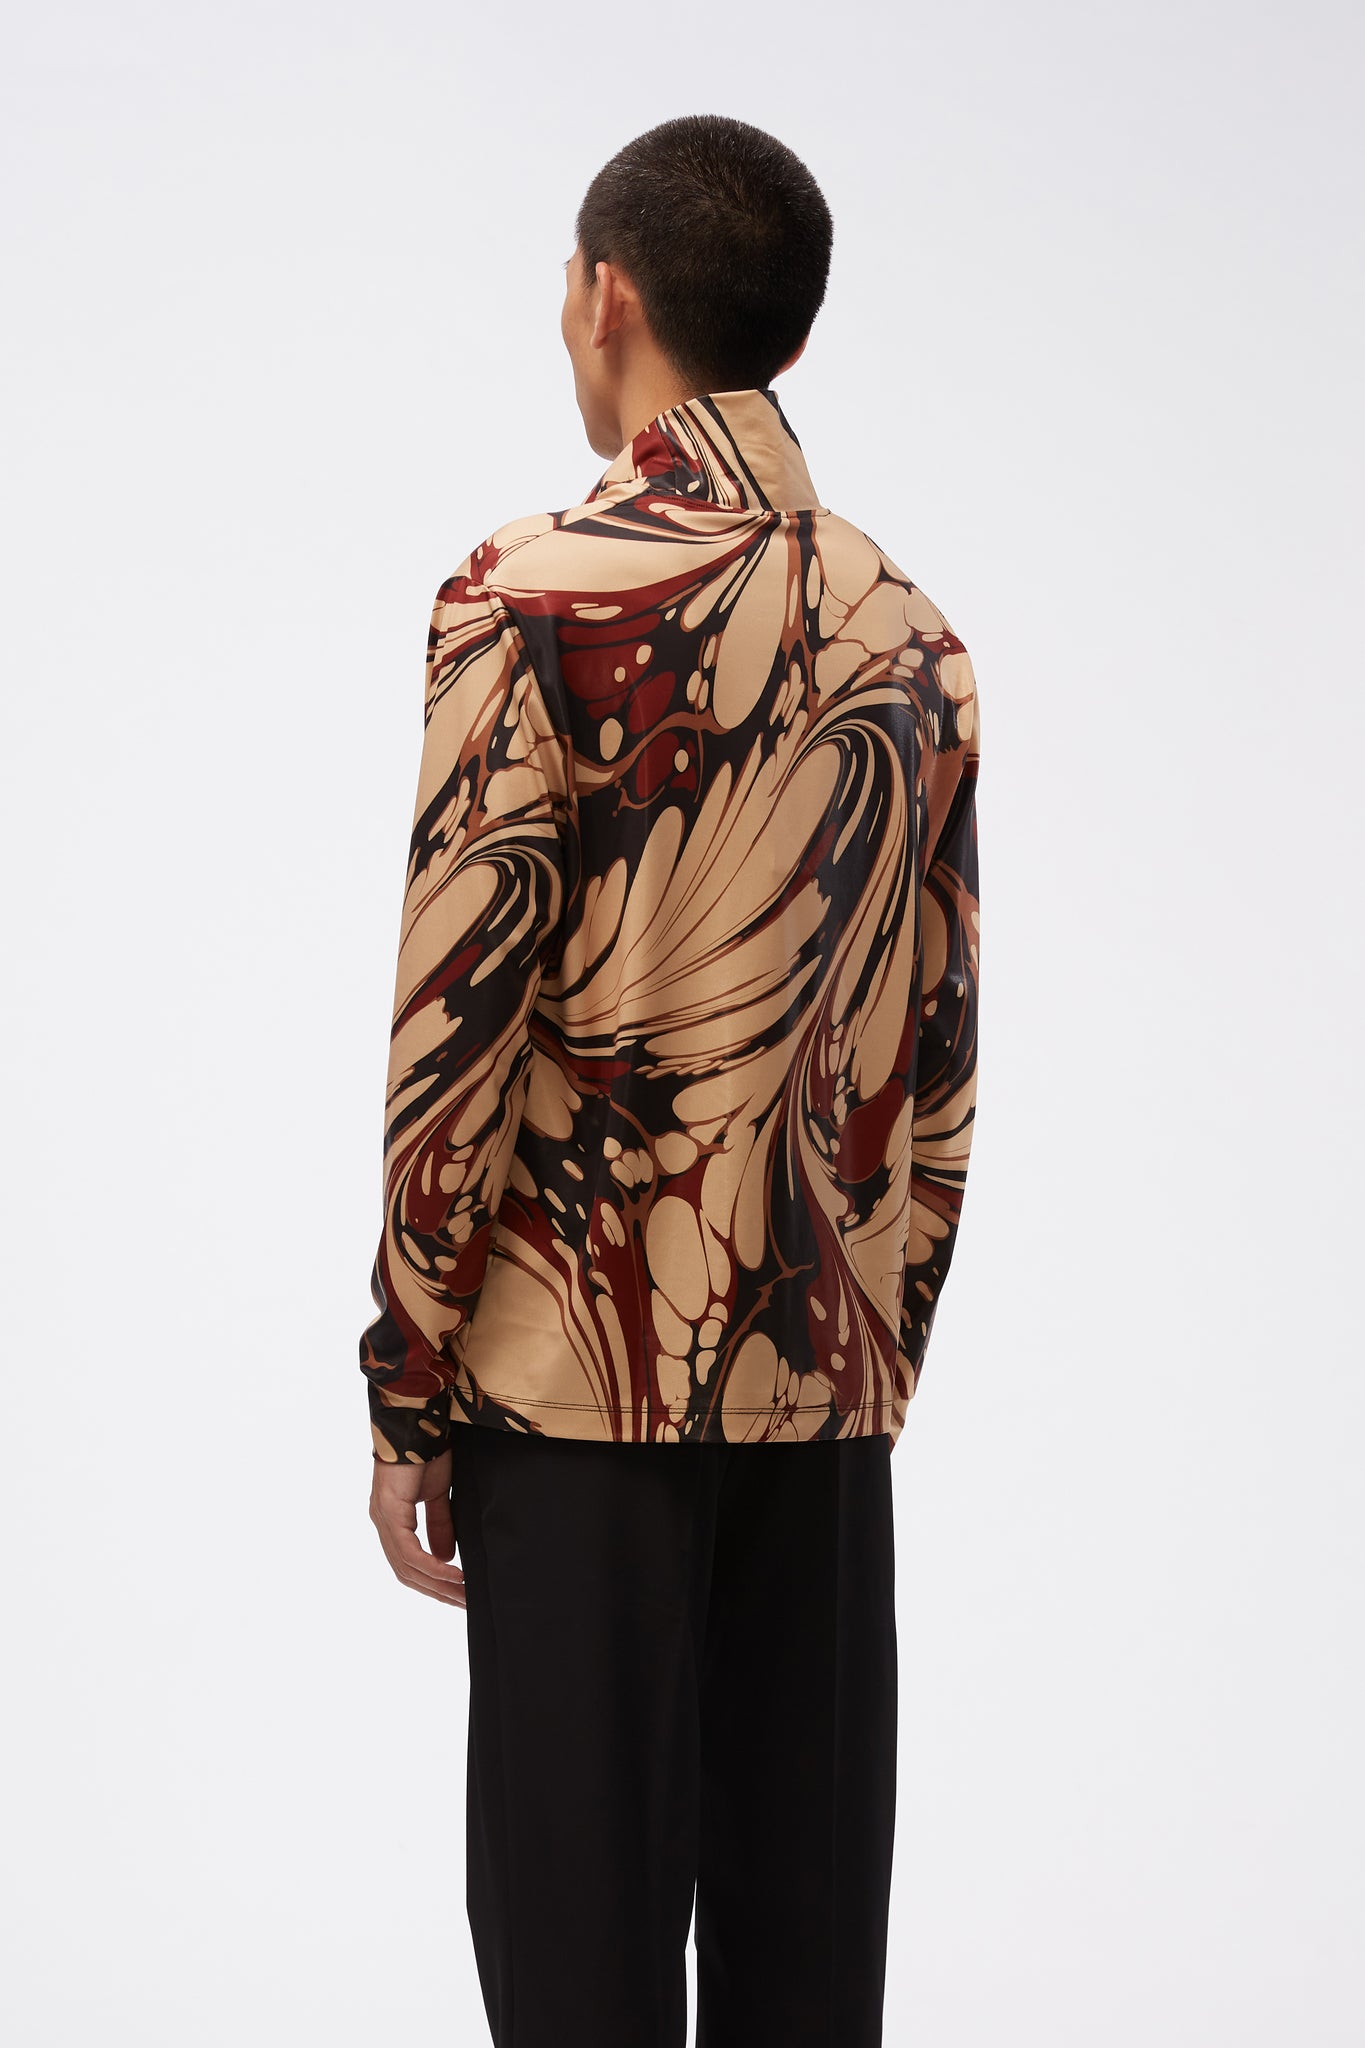 LS Turtle Neck Top Brown Marble Print Jersey